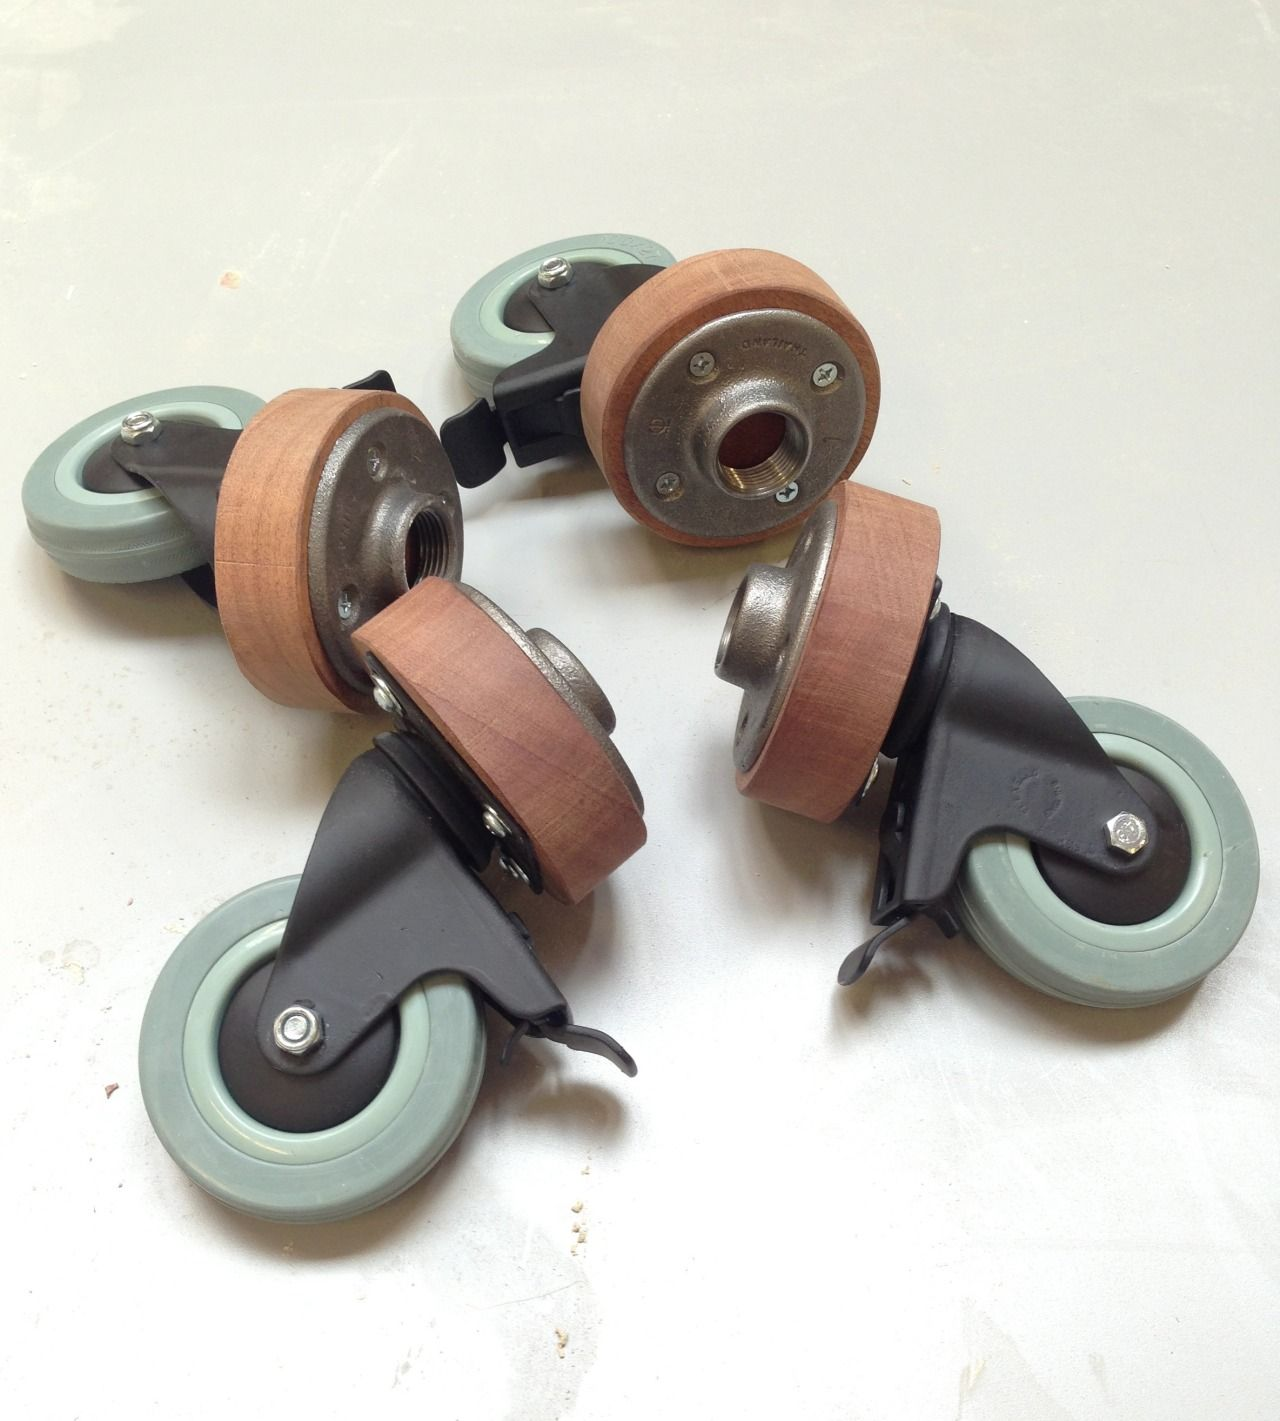 Pipe Floor Flange Mod To Attach Casters For Mobility. Can Be Used For Tables ,